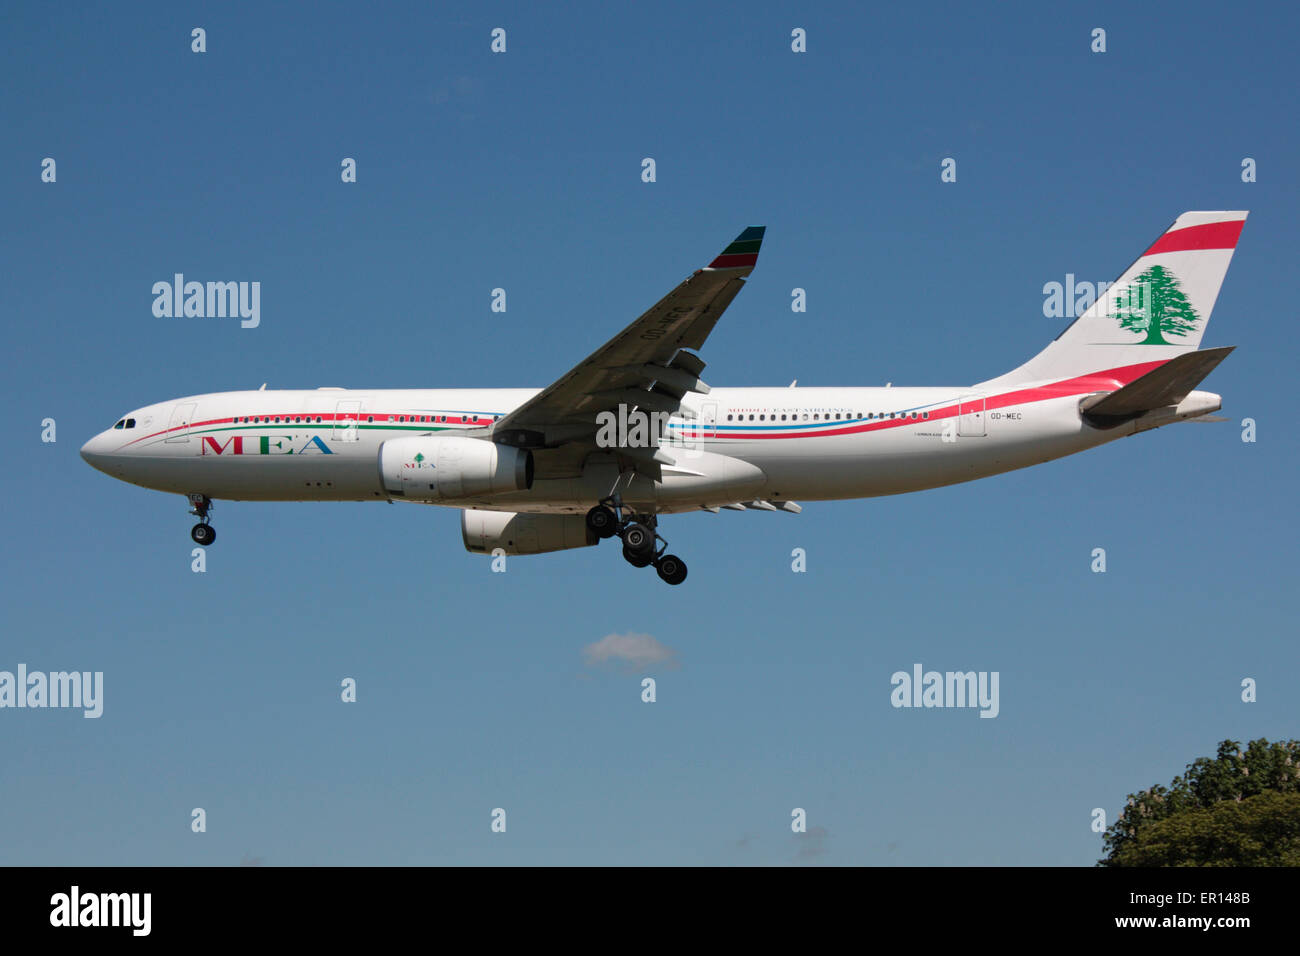 Middle East Airlines Airbus A330-200 on approach to London Heathrow - Stock Image